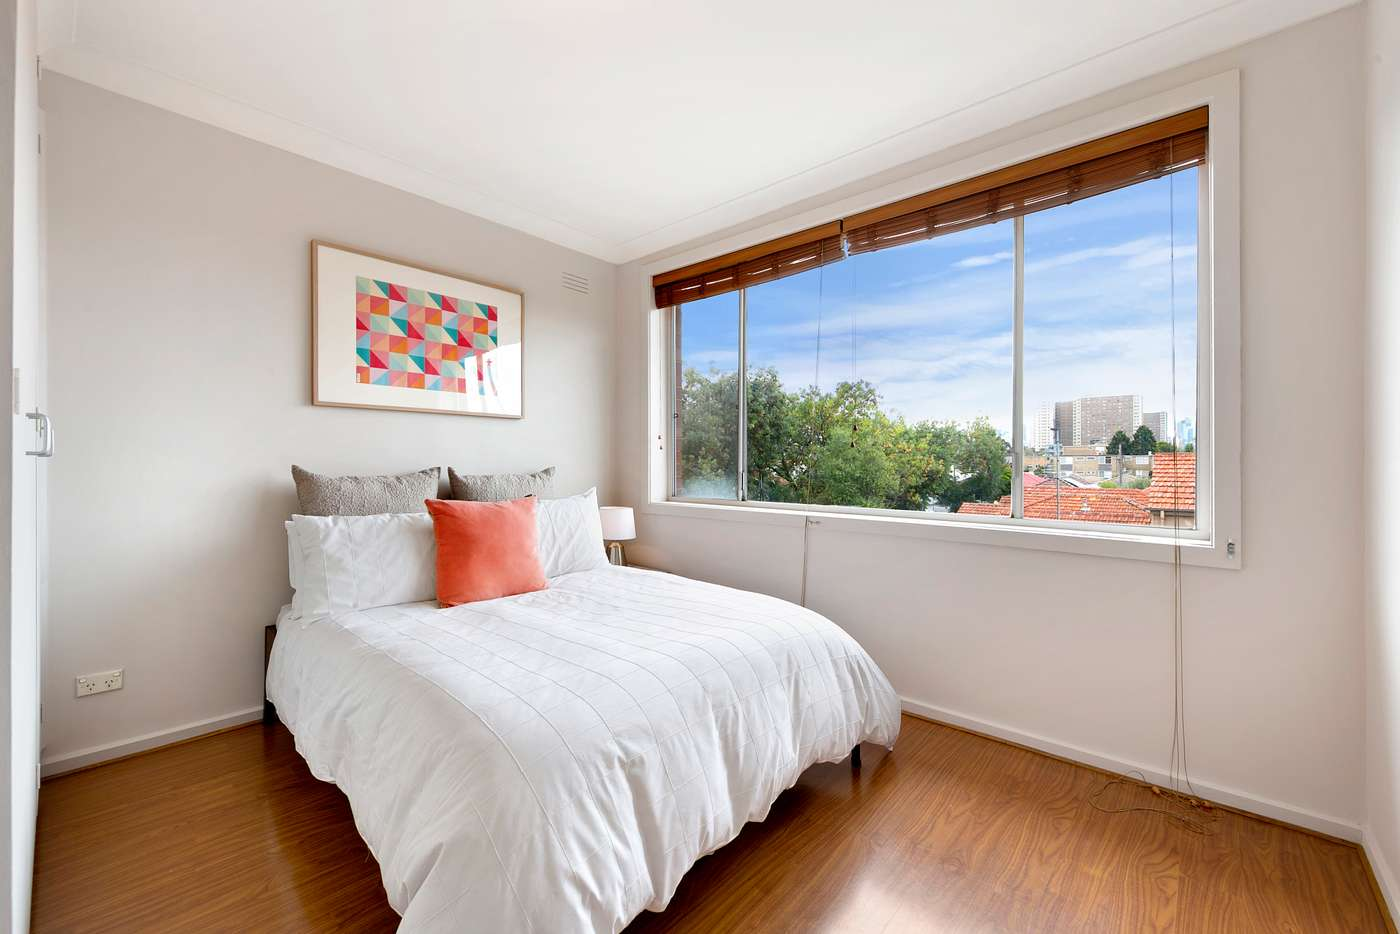 Fifth view of Homely apartment listing, 4/24 Bennett Street, Richmond VIC 3121